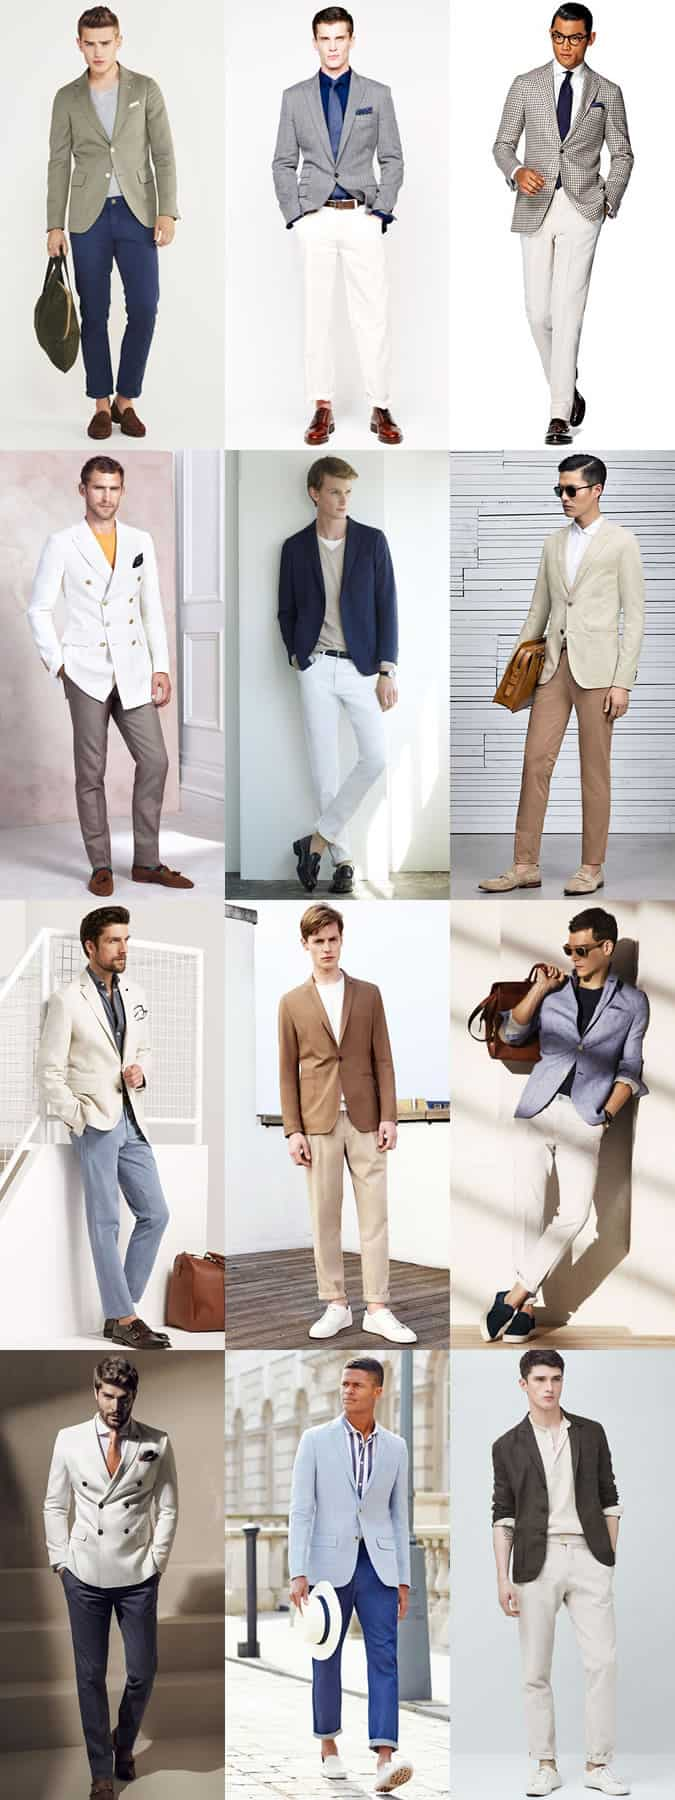 Go-To Smart-Casual Summer Outfit Combinations | FashionBeans